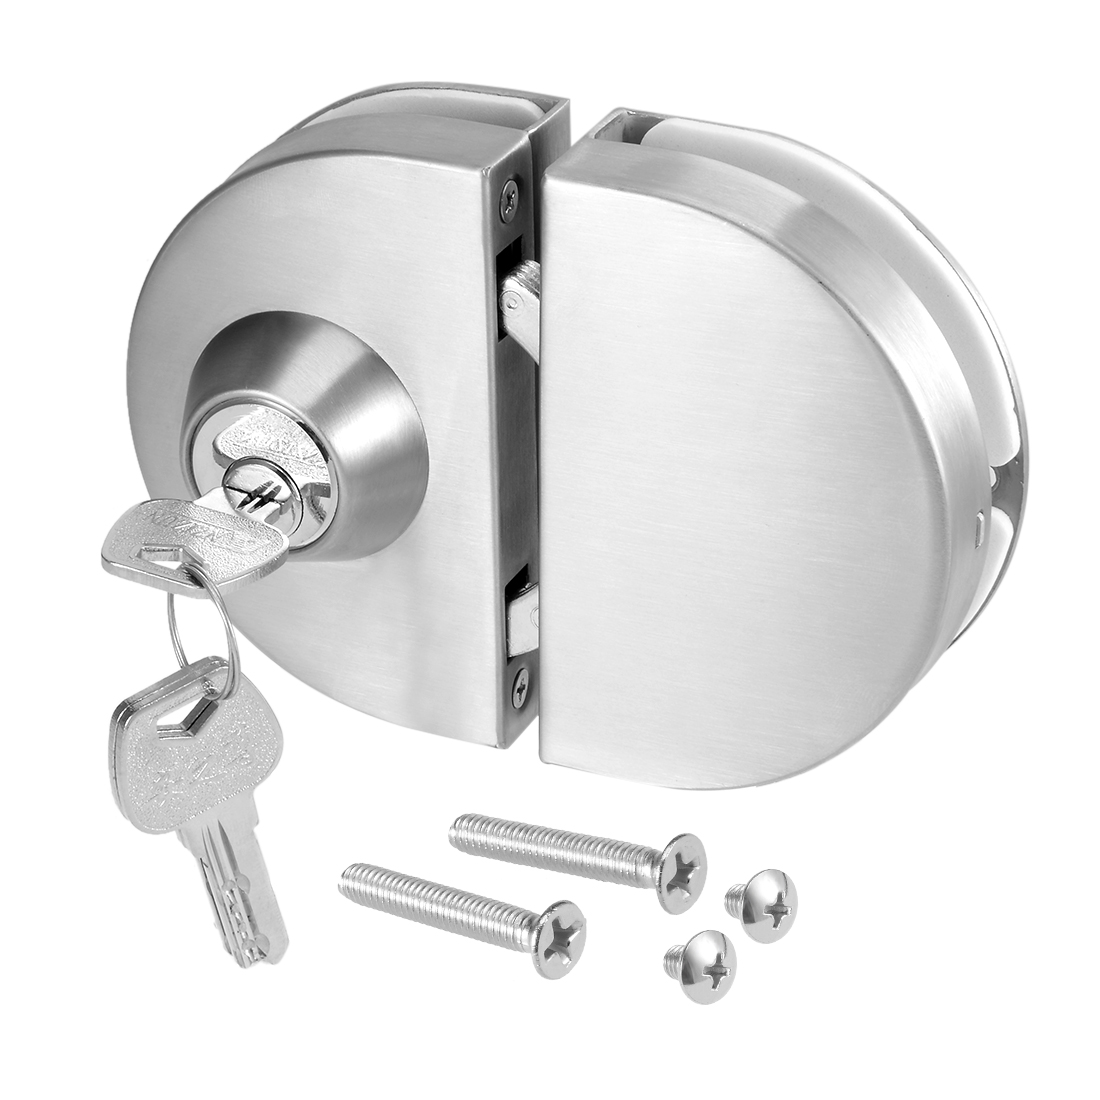 12mm Glass to Glass Door Latch Lock Stainless Steel Brushed Finish